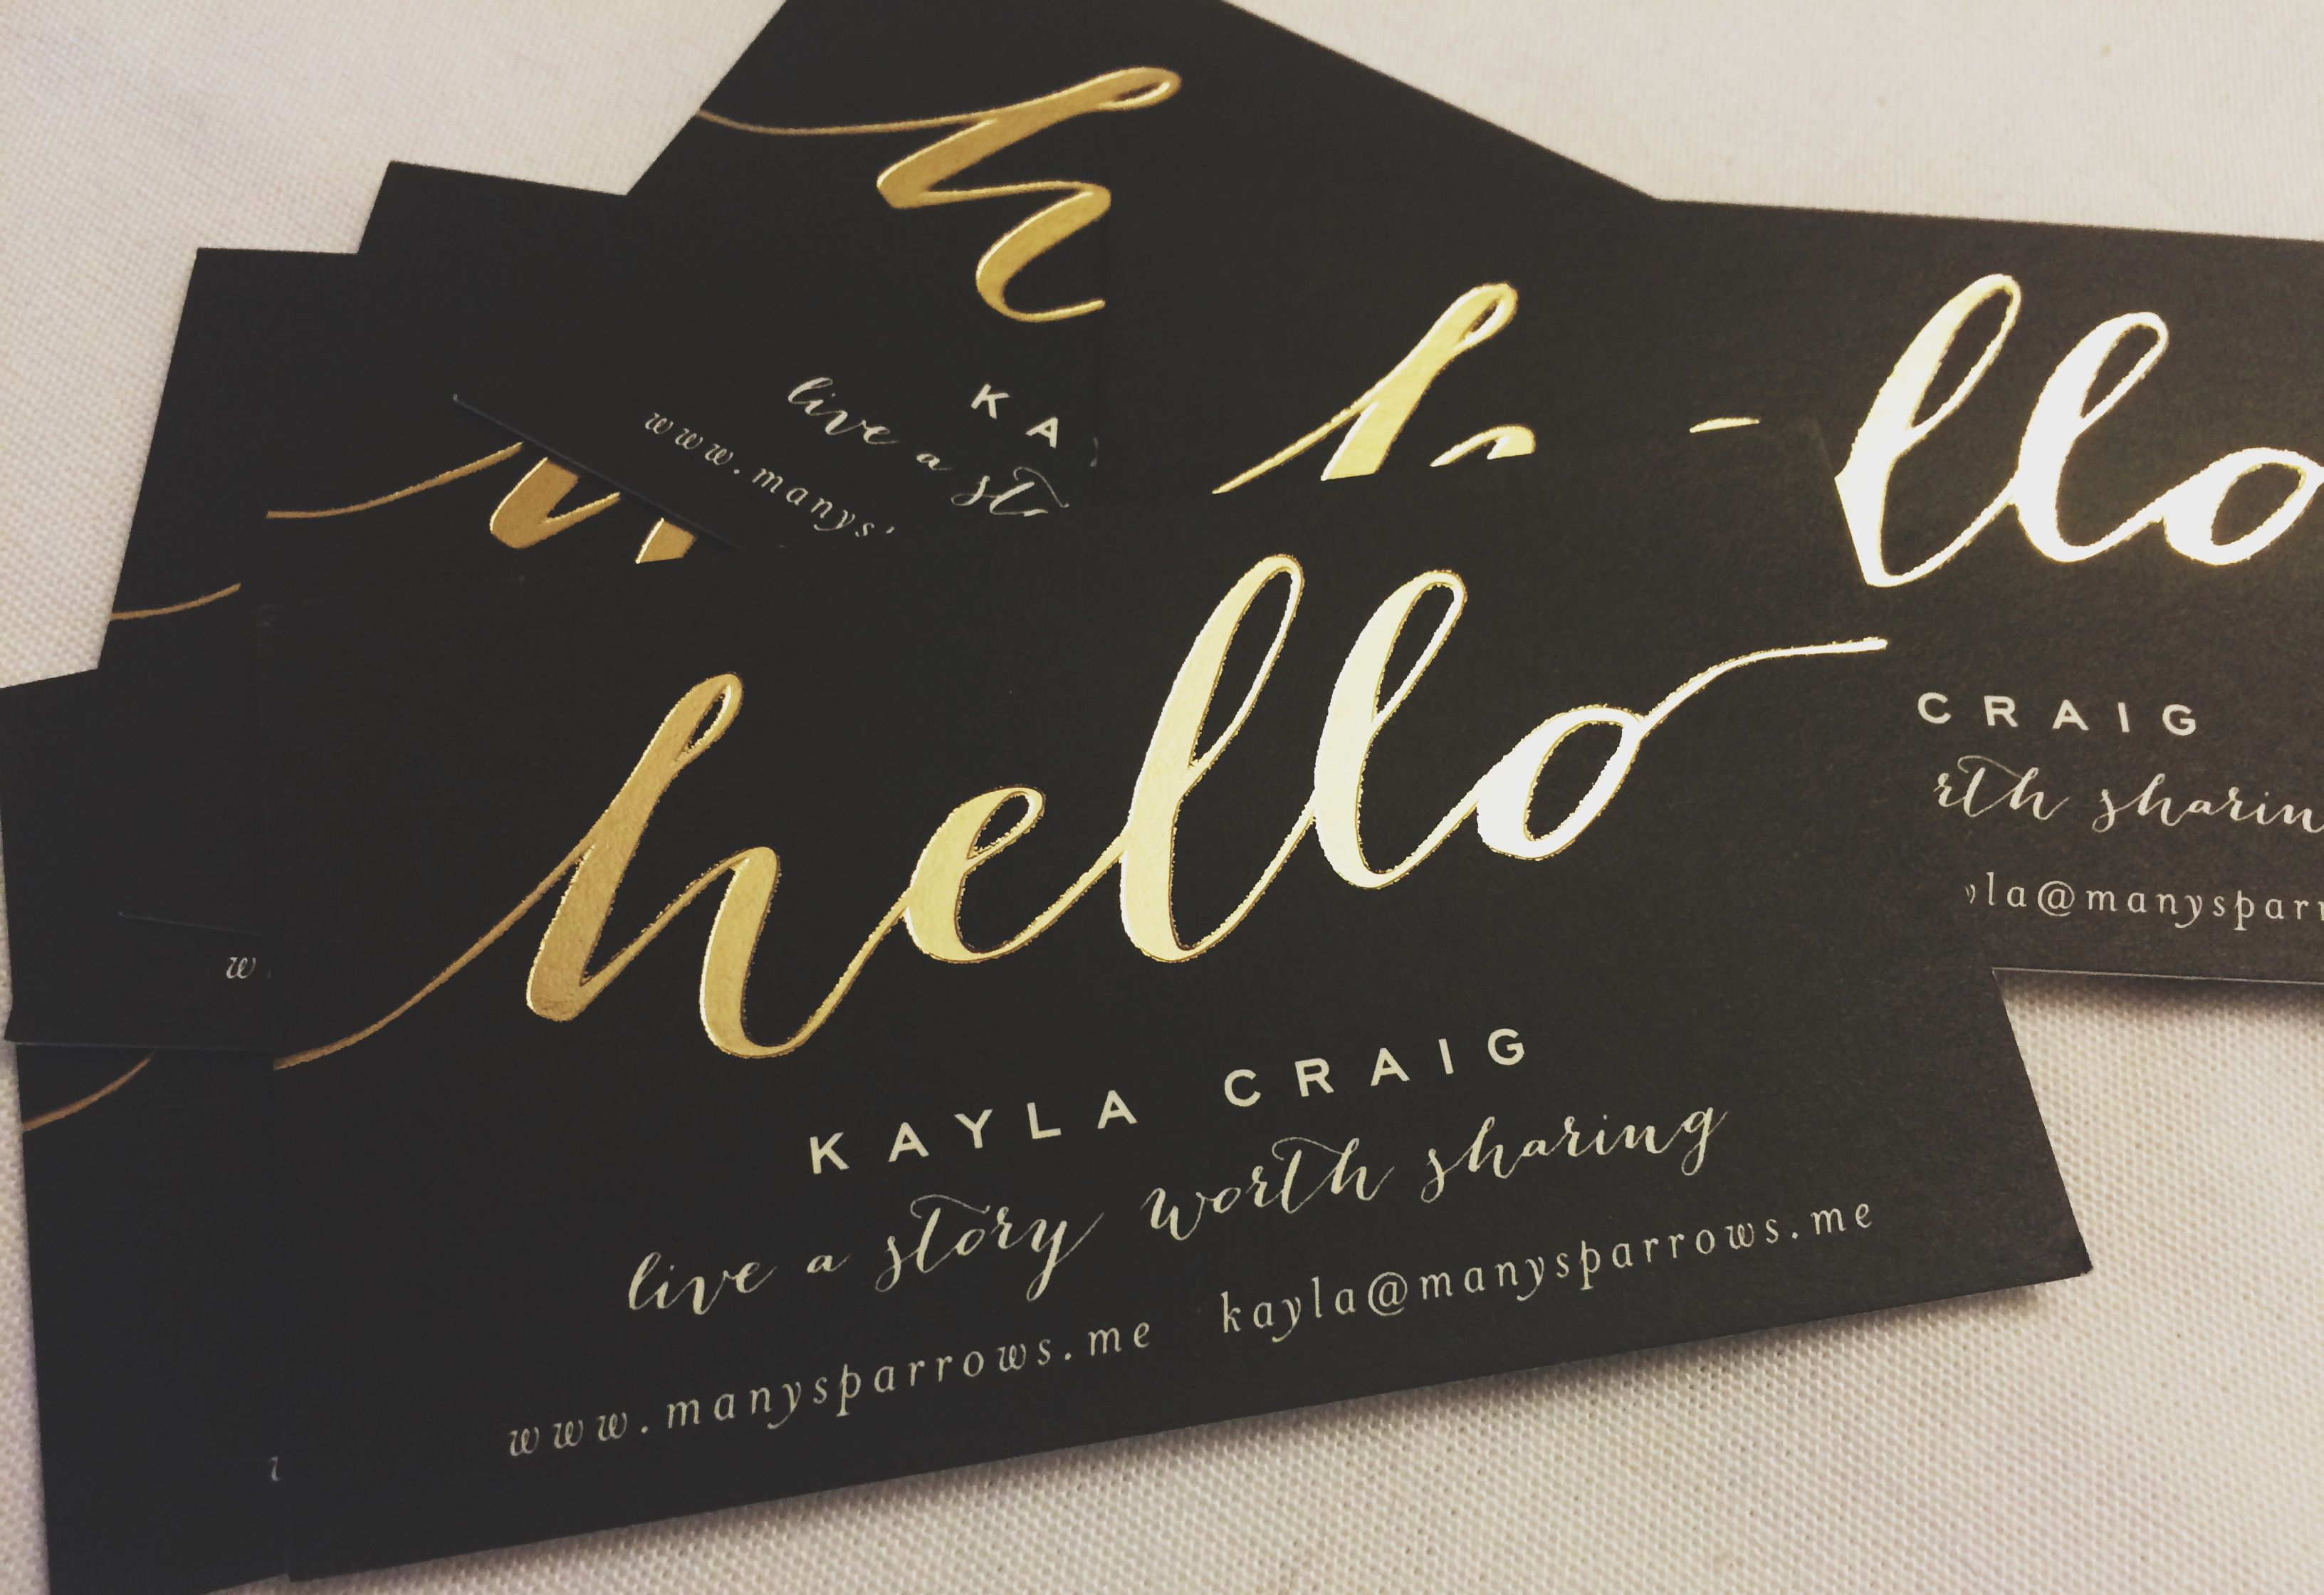 Minted gold foil business cards networking tips including what minted gold foil business cards networking tips including what to add on your business cards many sparrows blog colourmoves